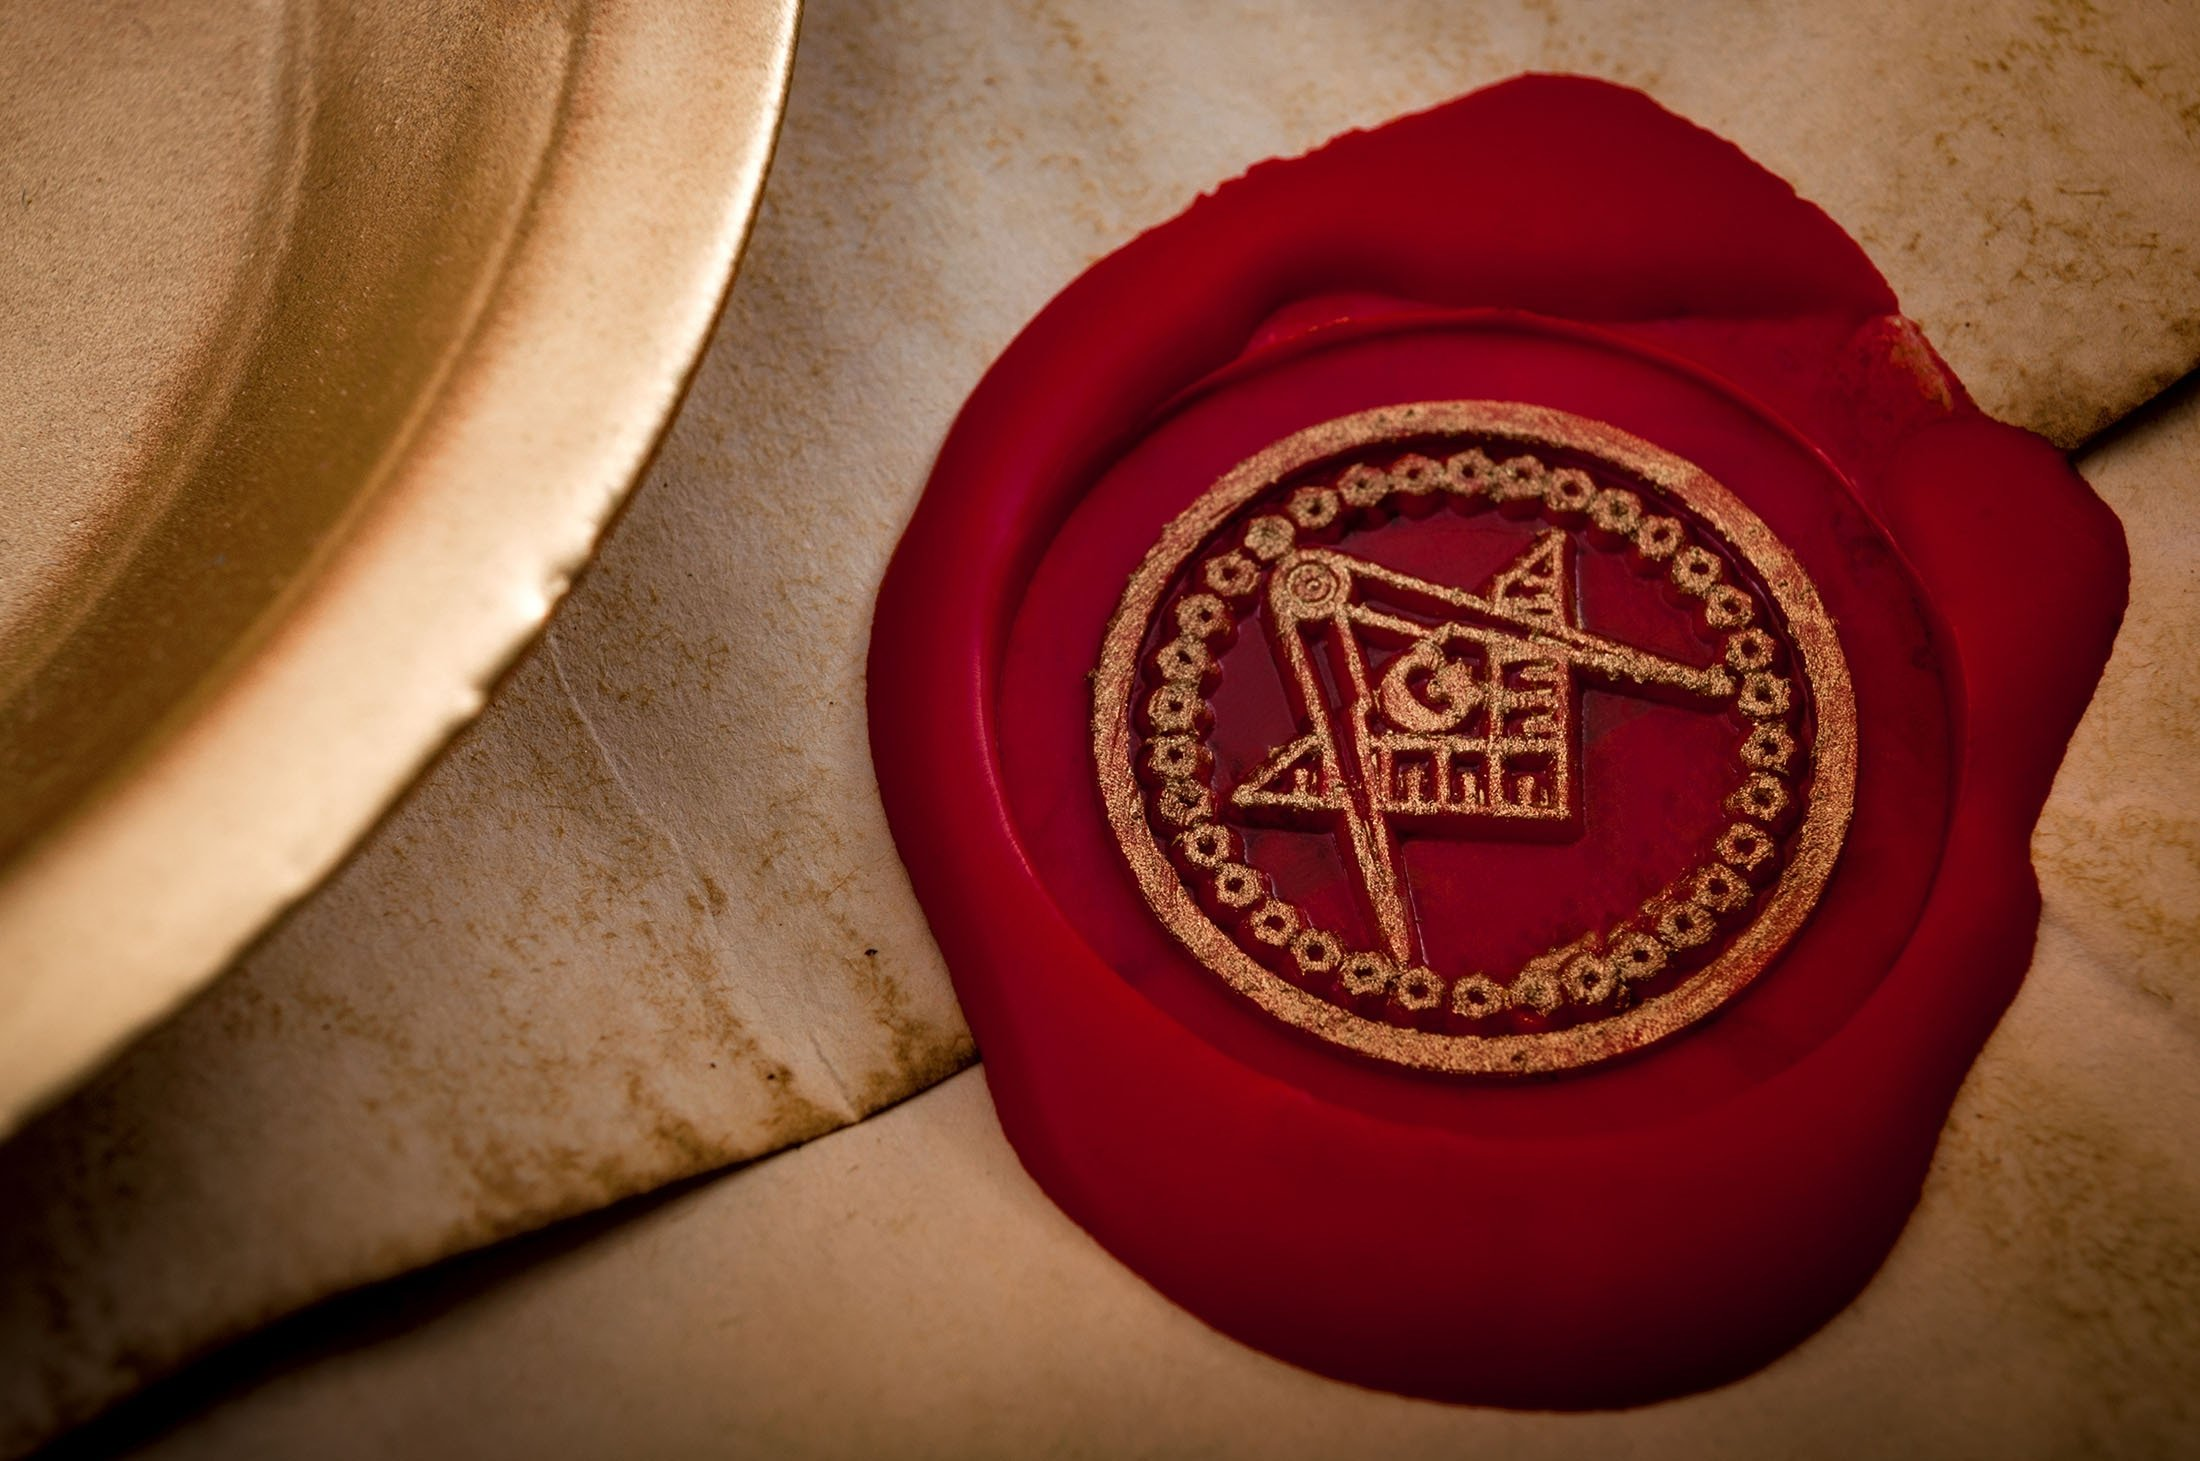 A letter is sealed with the Masonic Square and Compasses with the letter 'G,'one of the most identifiable masonic symbols. (Shutterstock Photo)